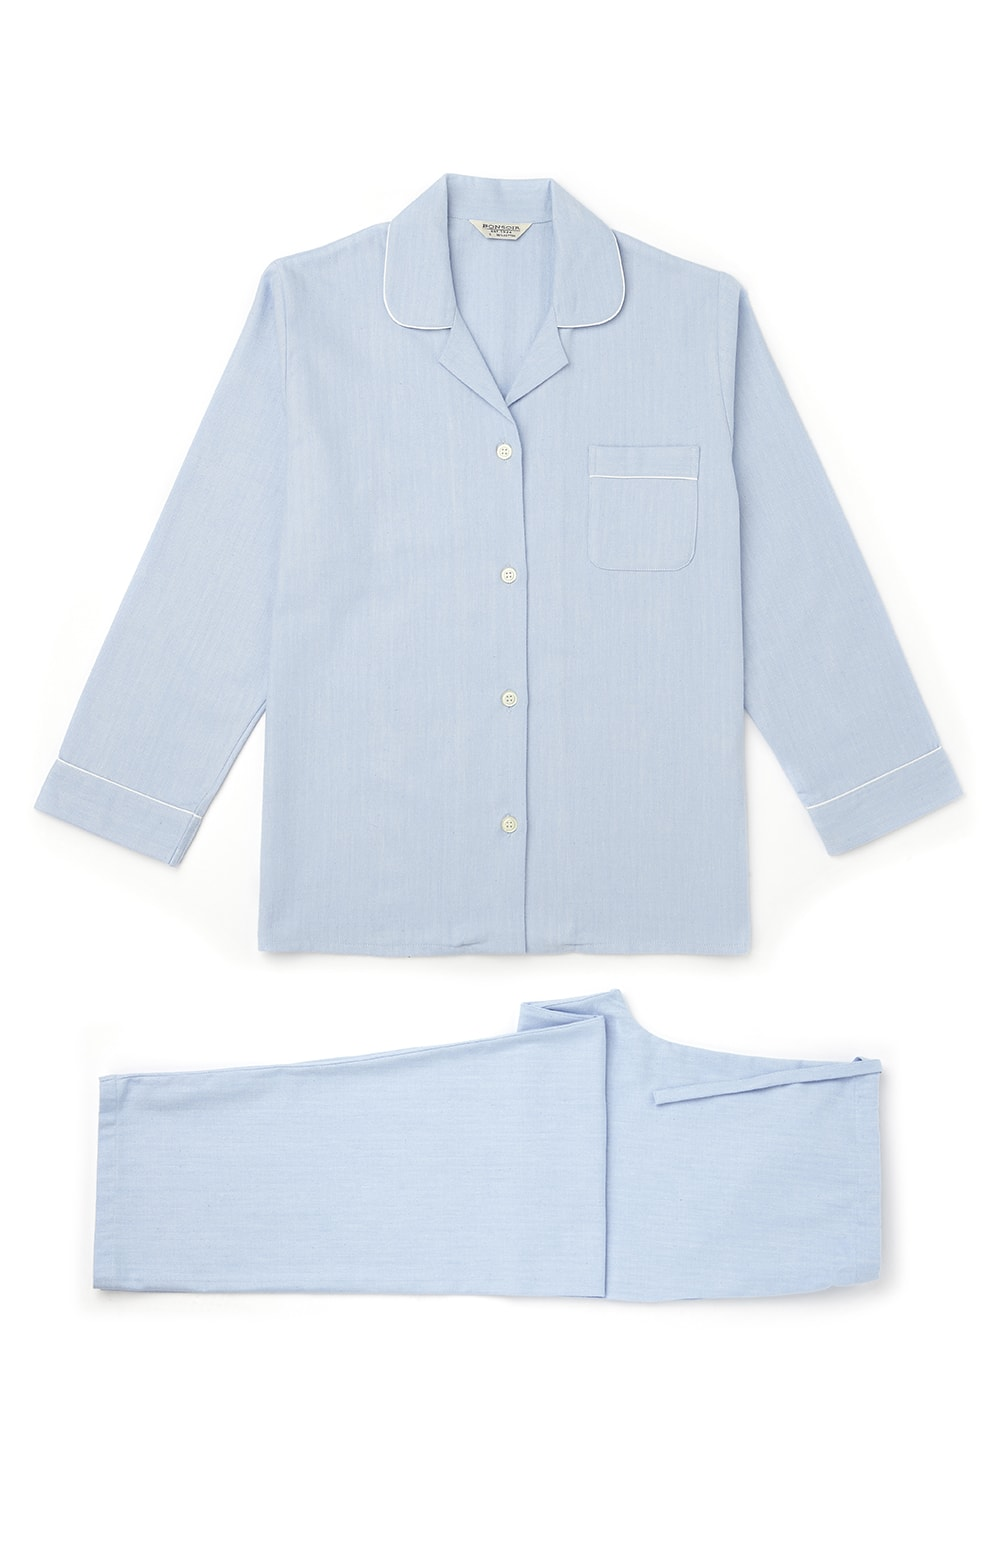 Women's Brushed Cotton Blue Herringbone Pyjamas | Bonsoir of London